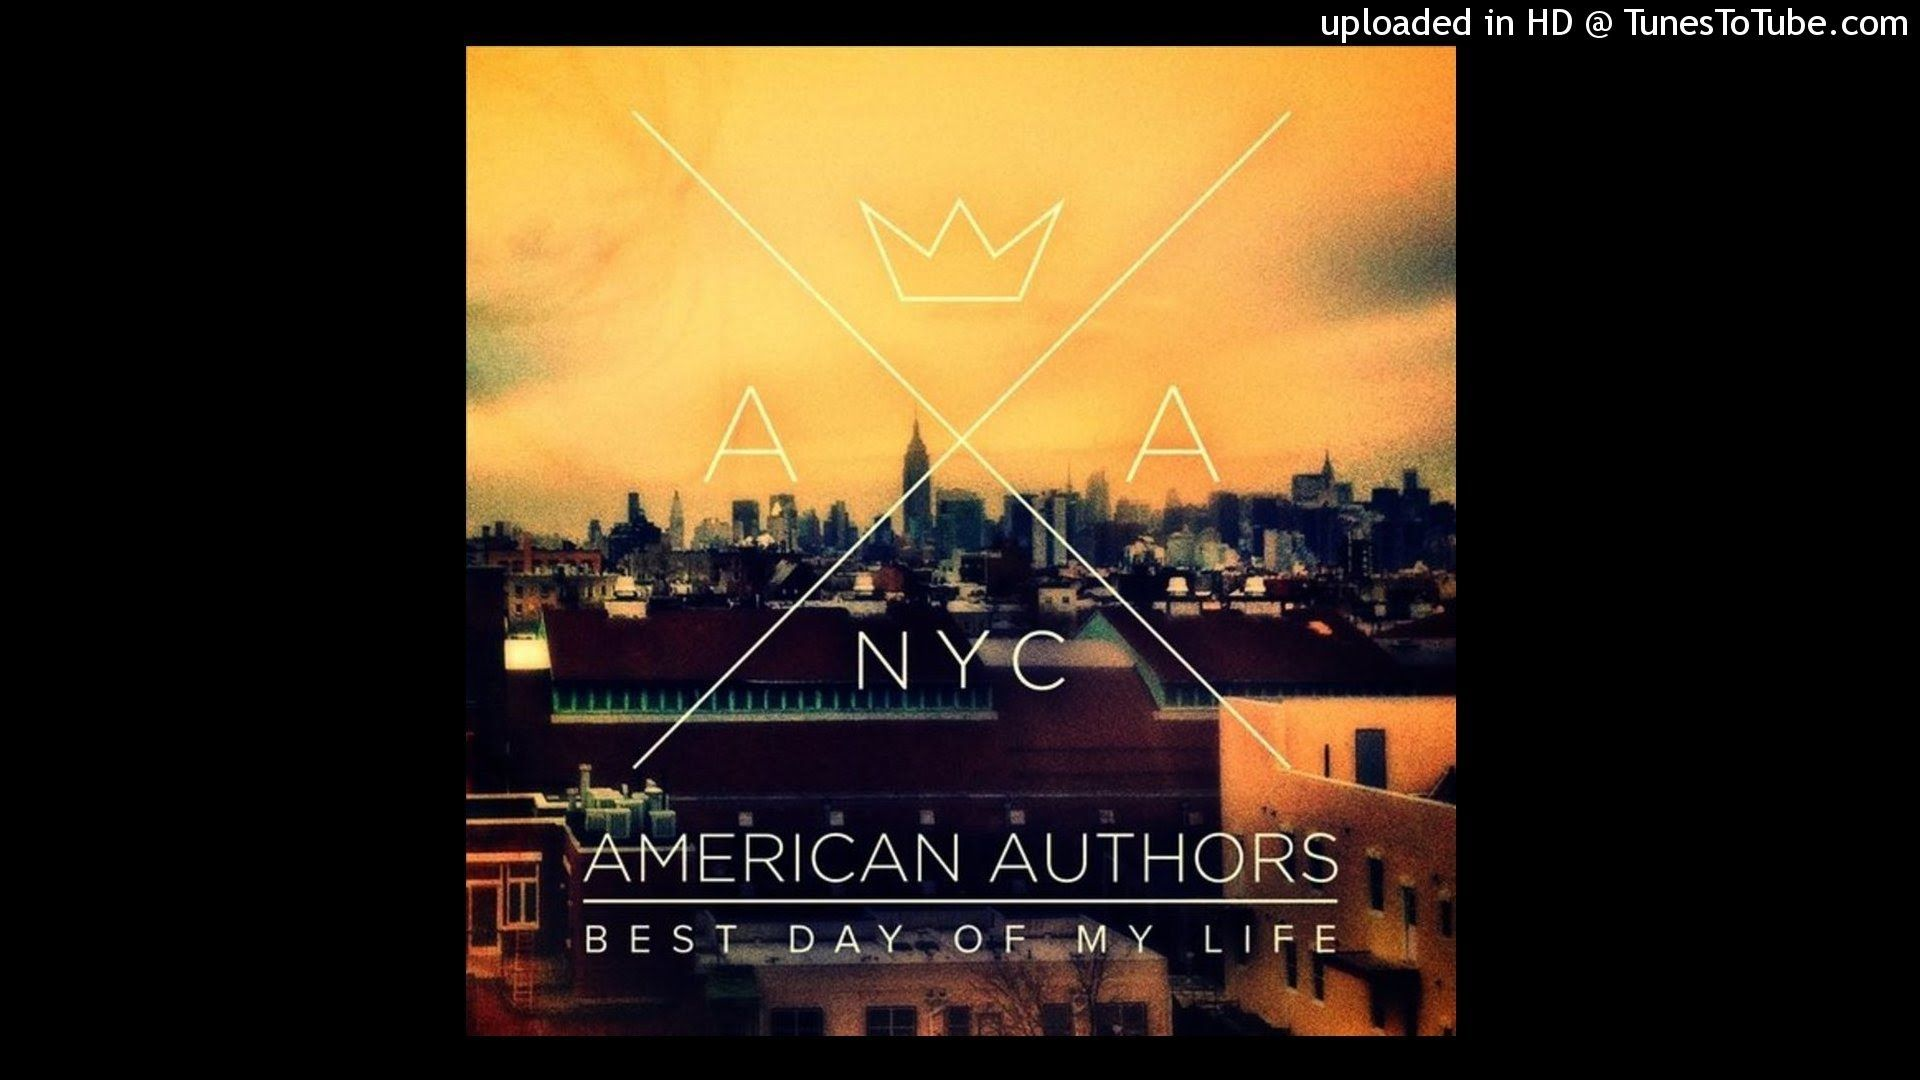 American Authors Best Day Of My Life Official Instrumental